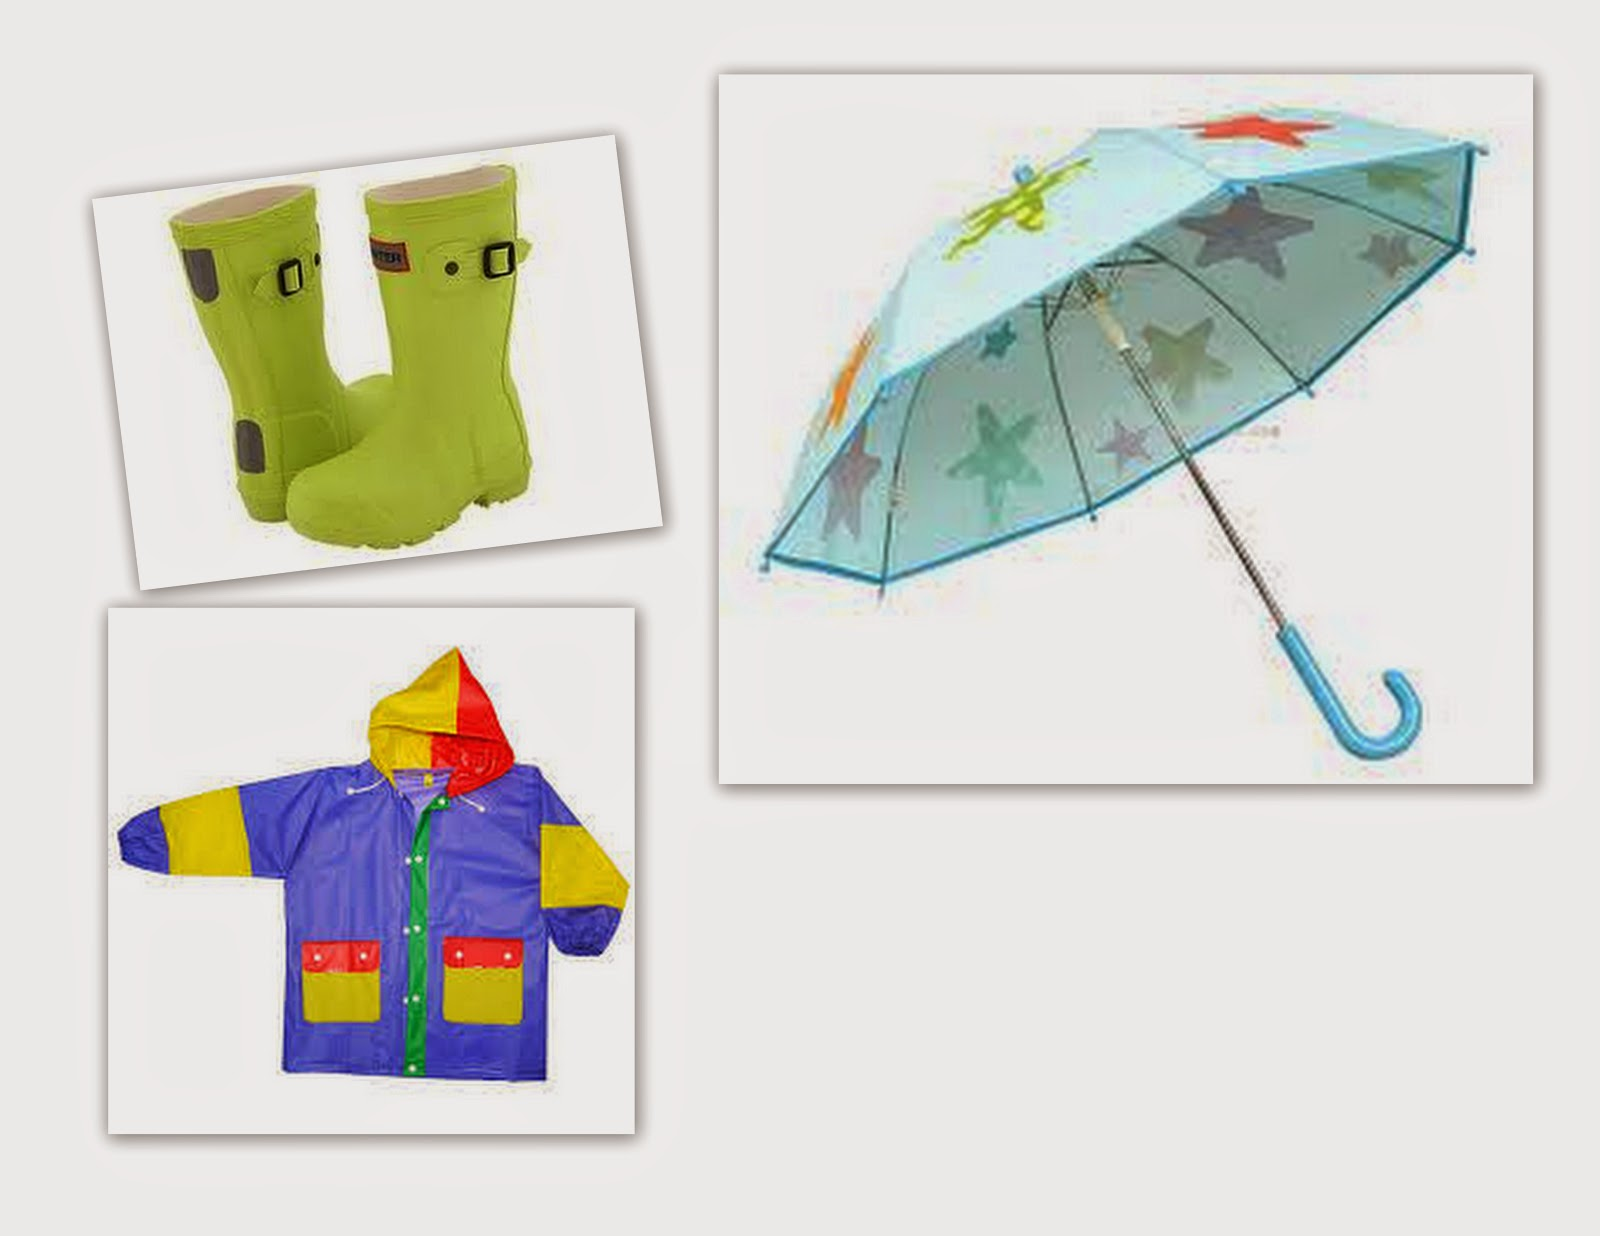 everymom spage safety tips for your kids during rainy season